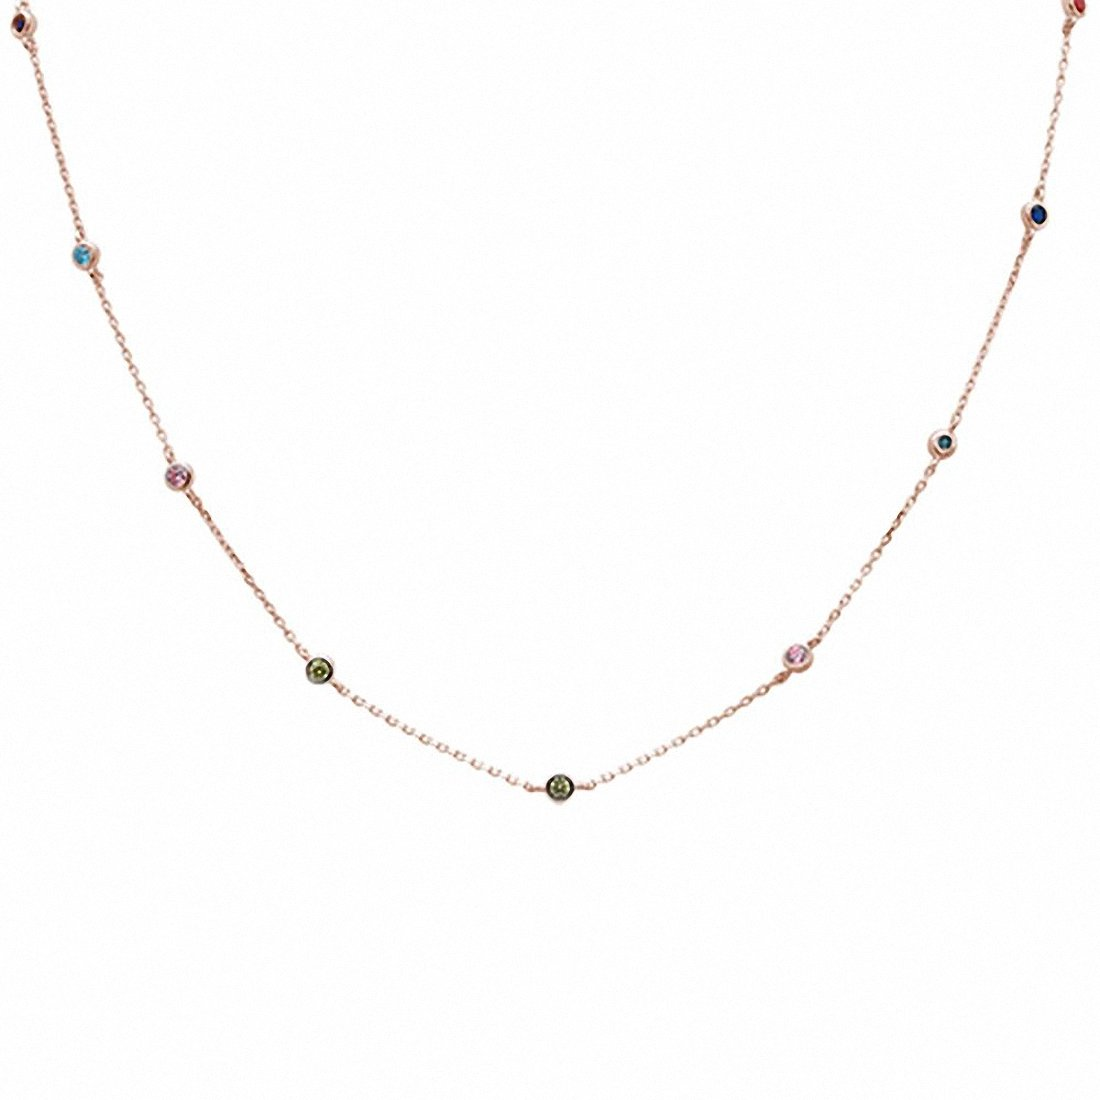 "Muticolored Simulated Stone Cubic Zirconia by the Yard 925 Sterling Silver 18"" Necklace Choose Color"